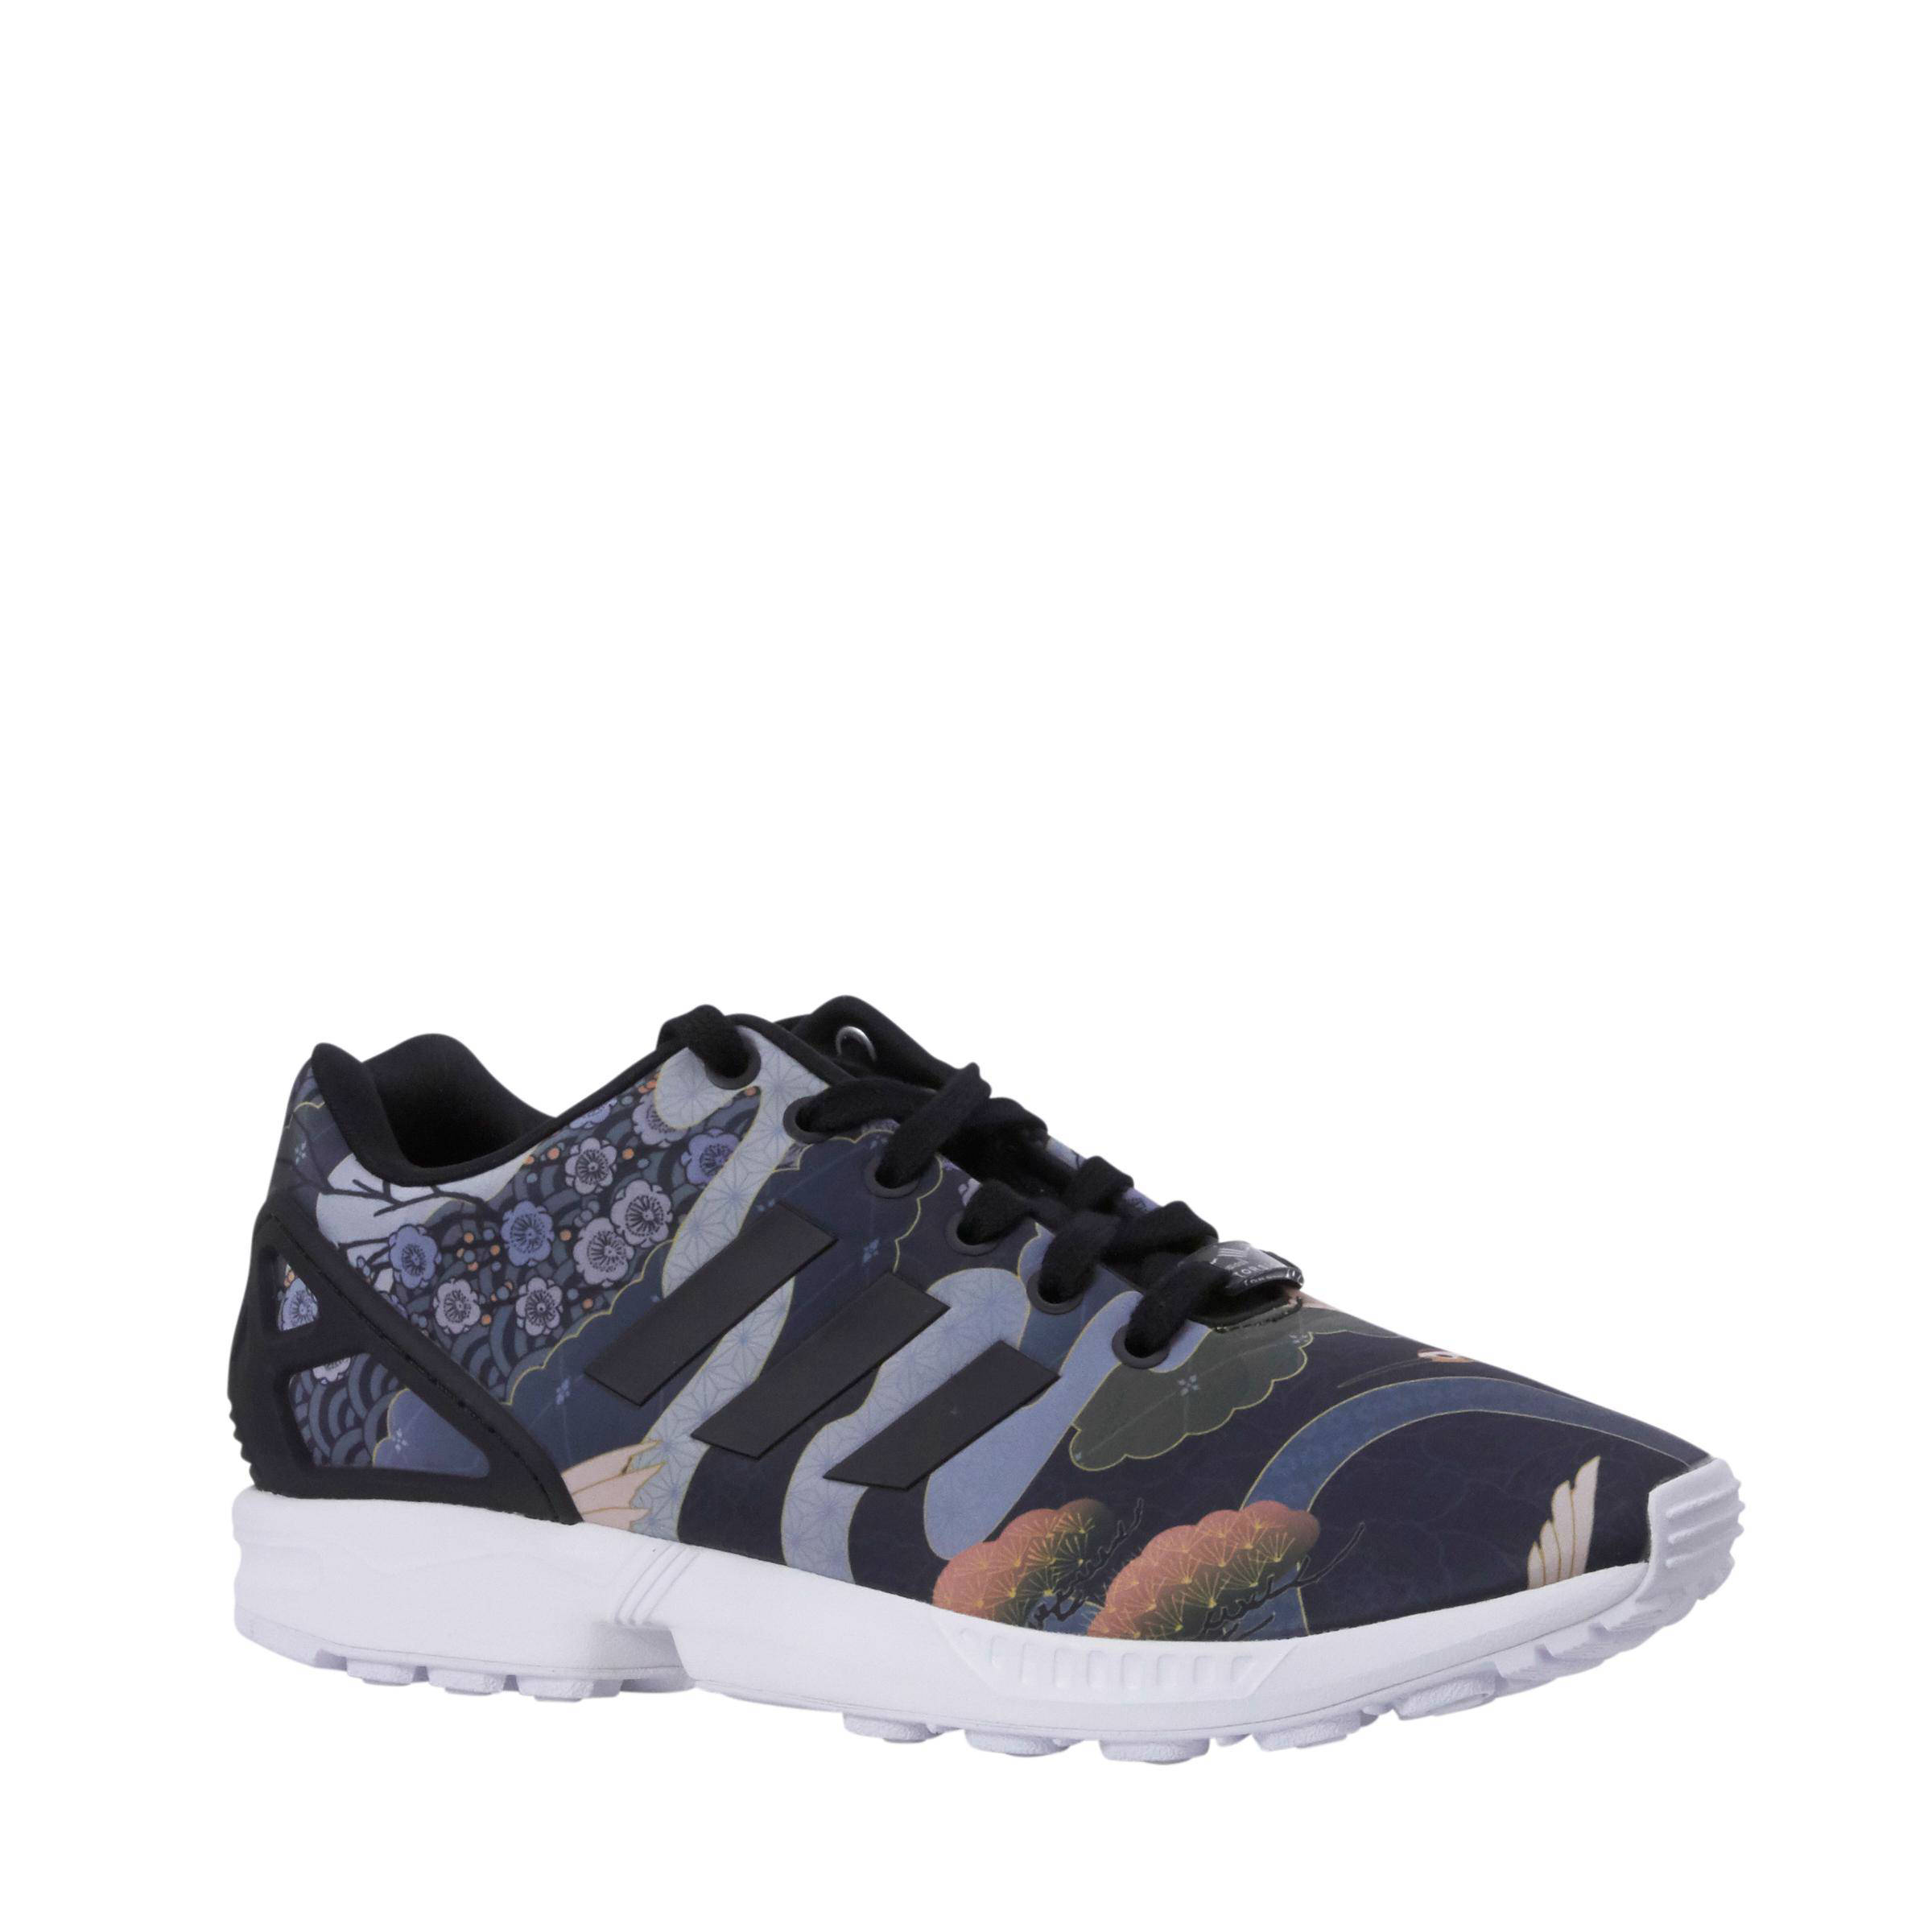 Sneakers Zx Flux W by adidas originals